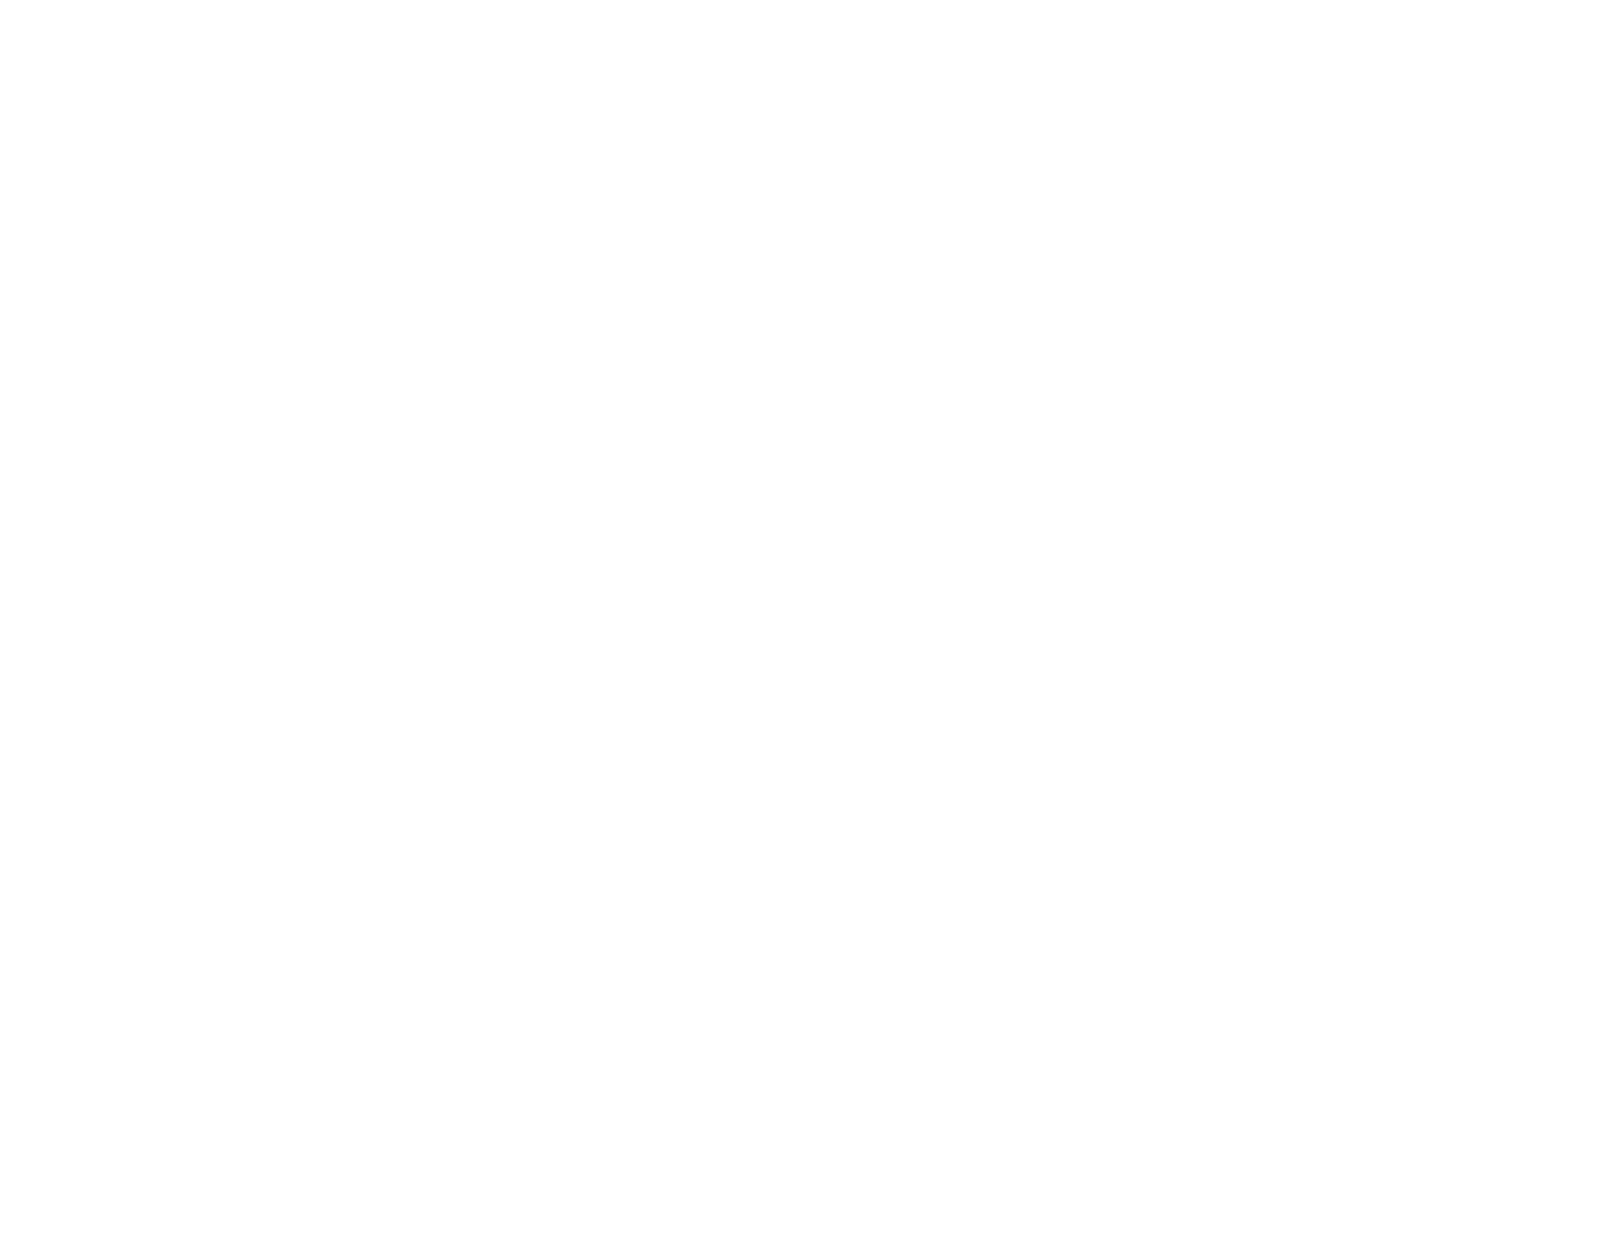 credence-pictures-logo